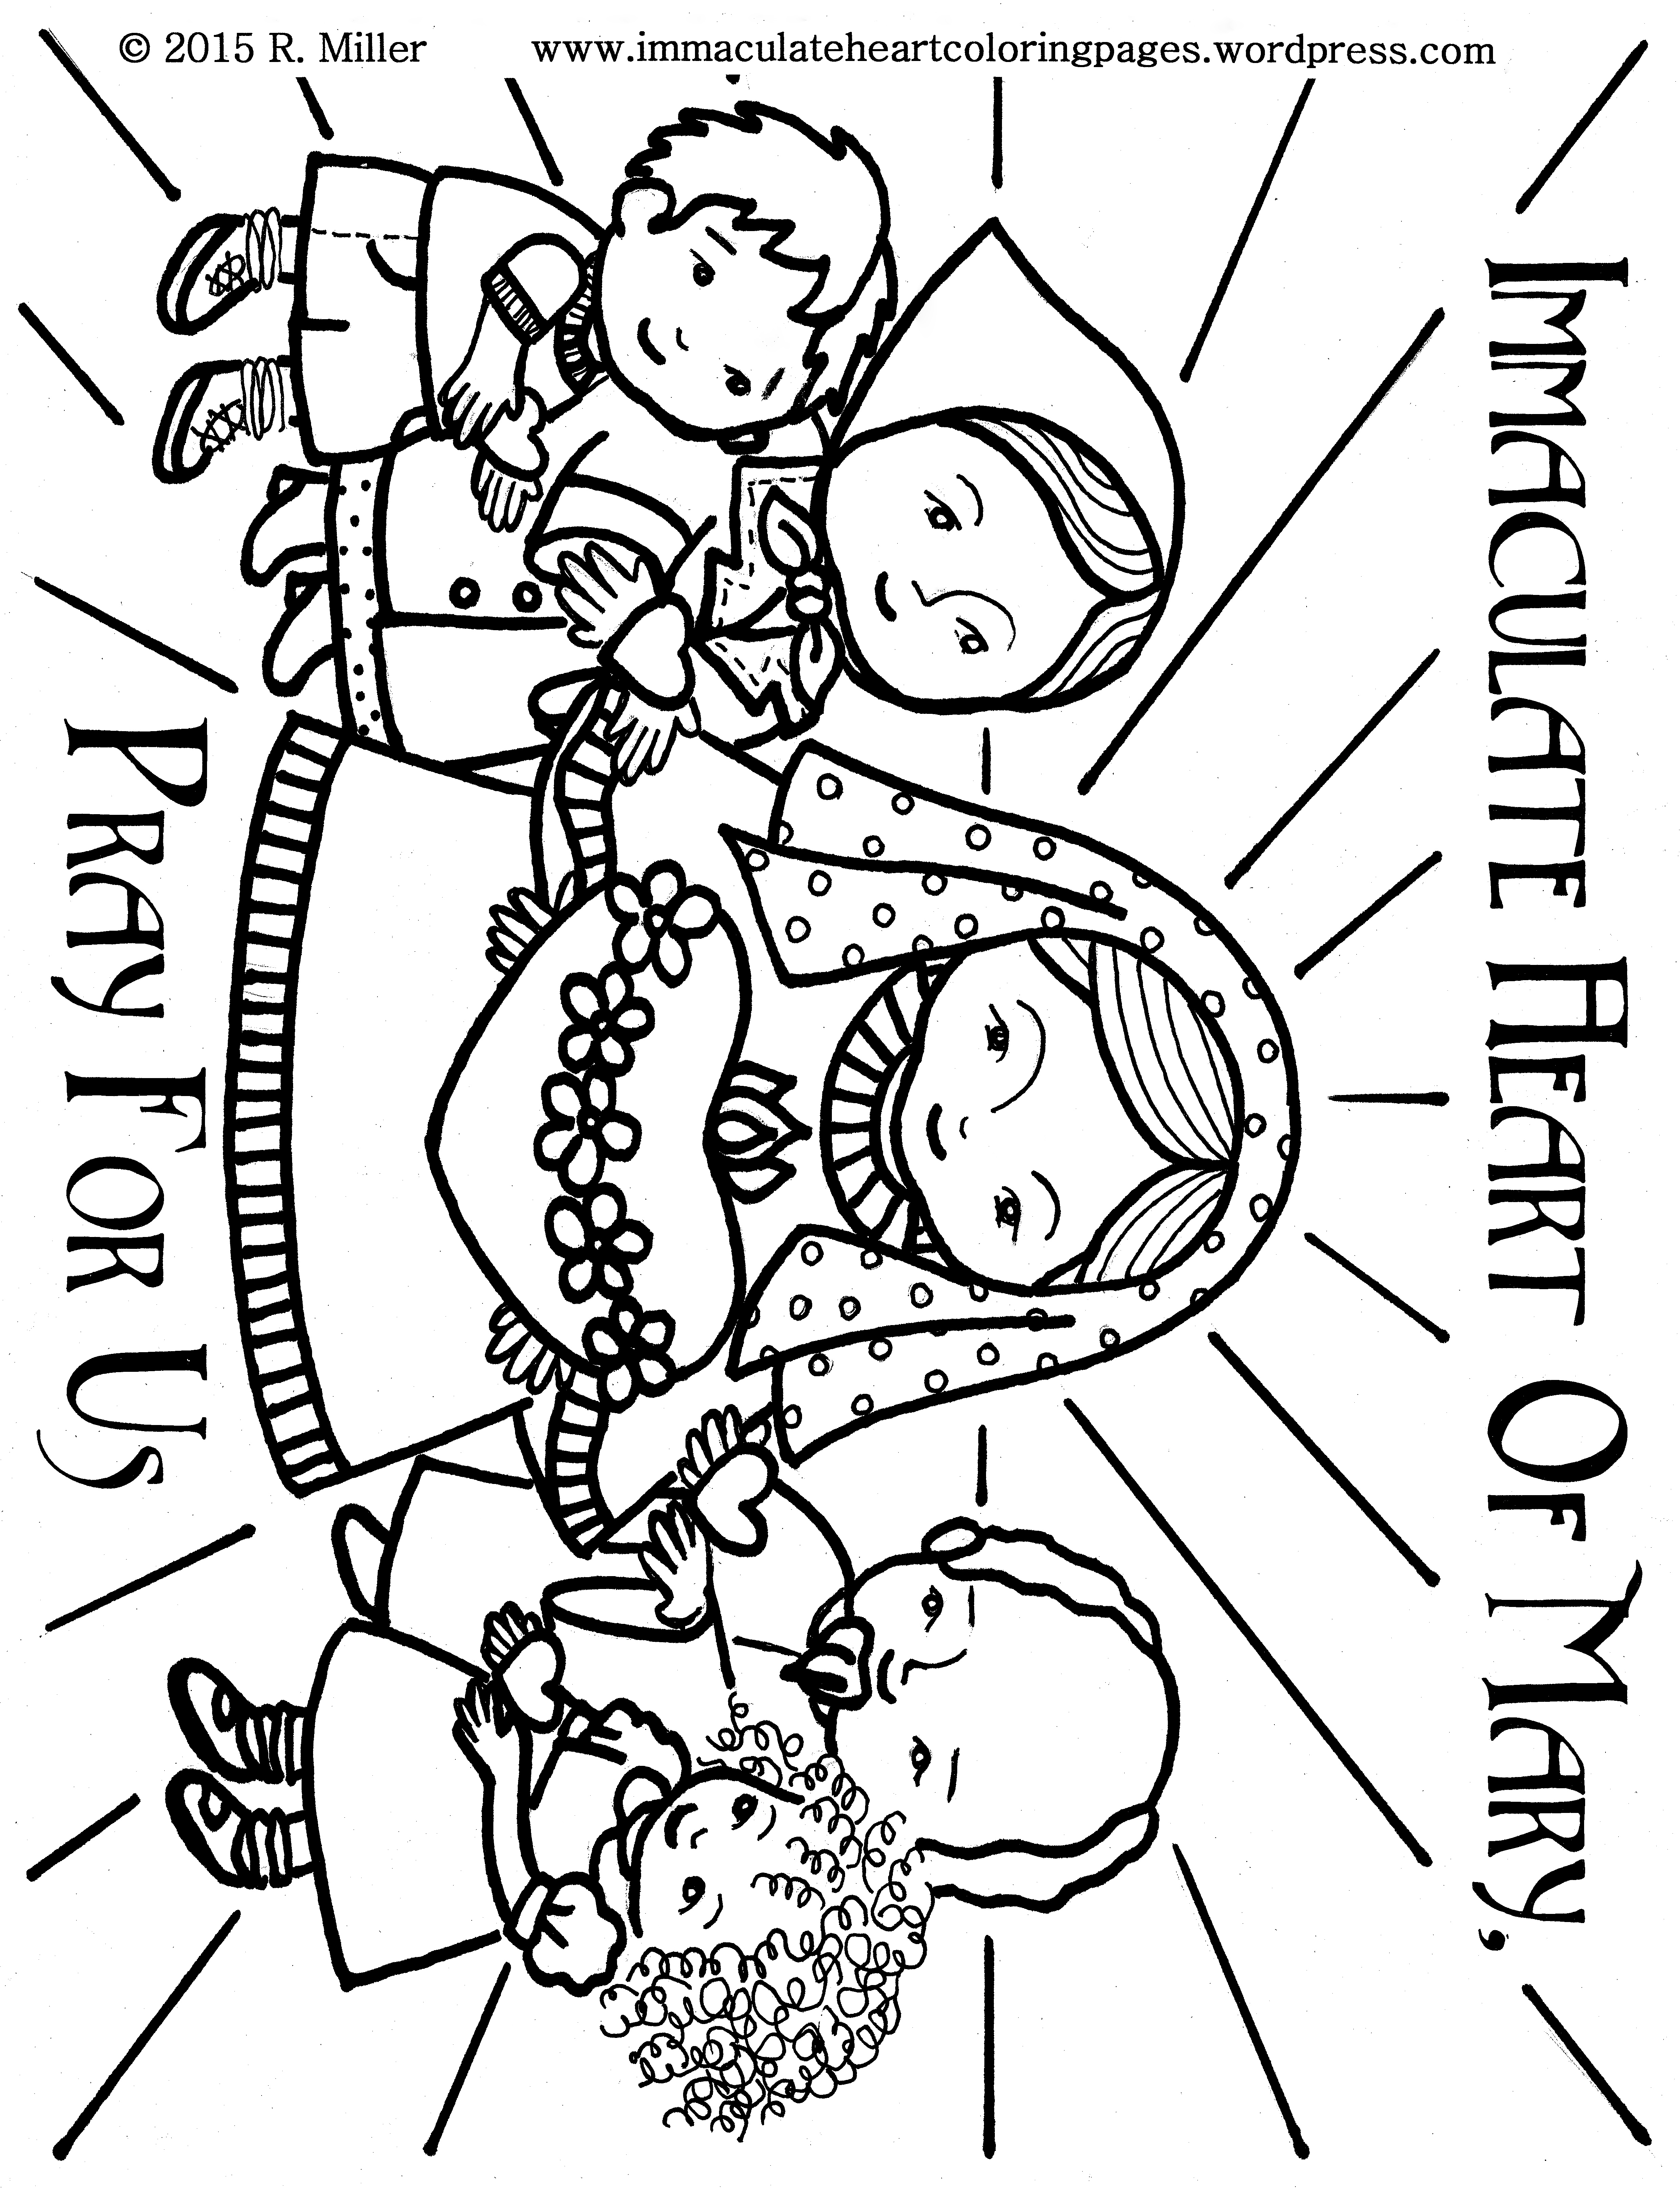 Are Your Children Consecrated to Jesus through Mary's